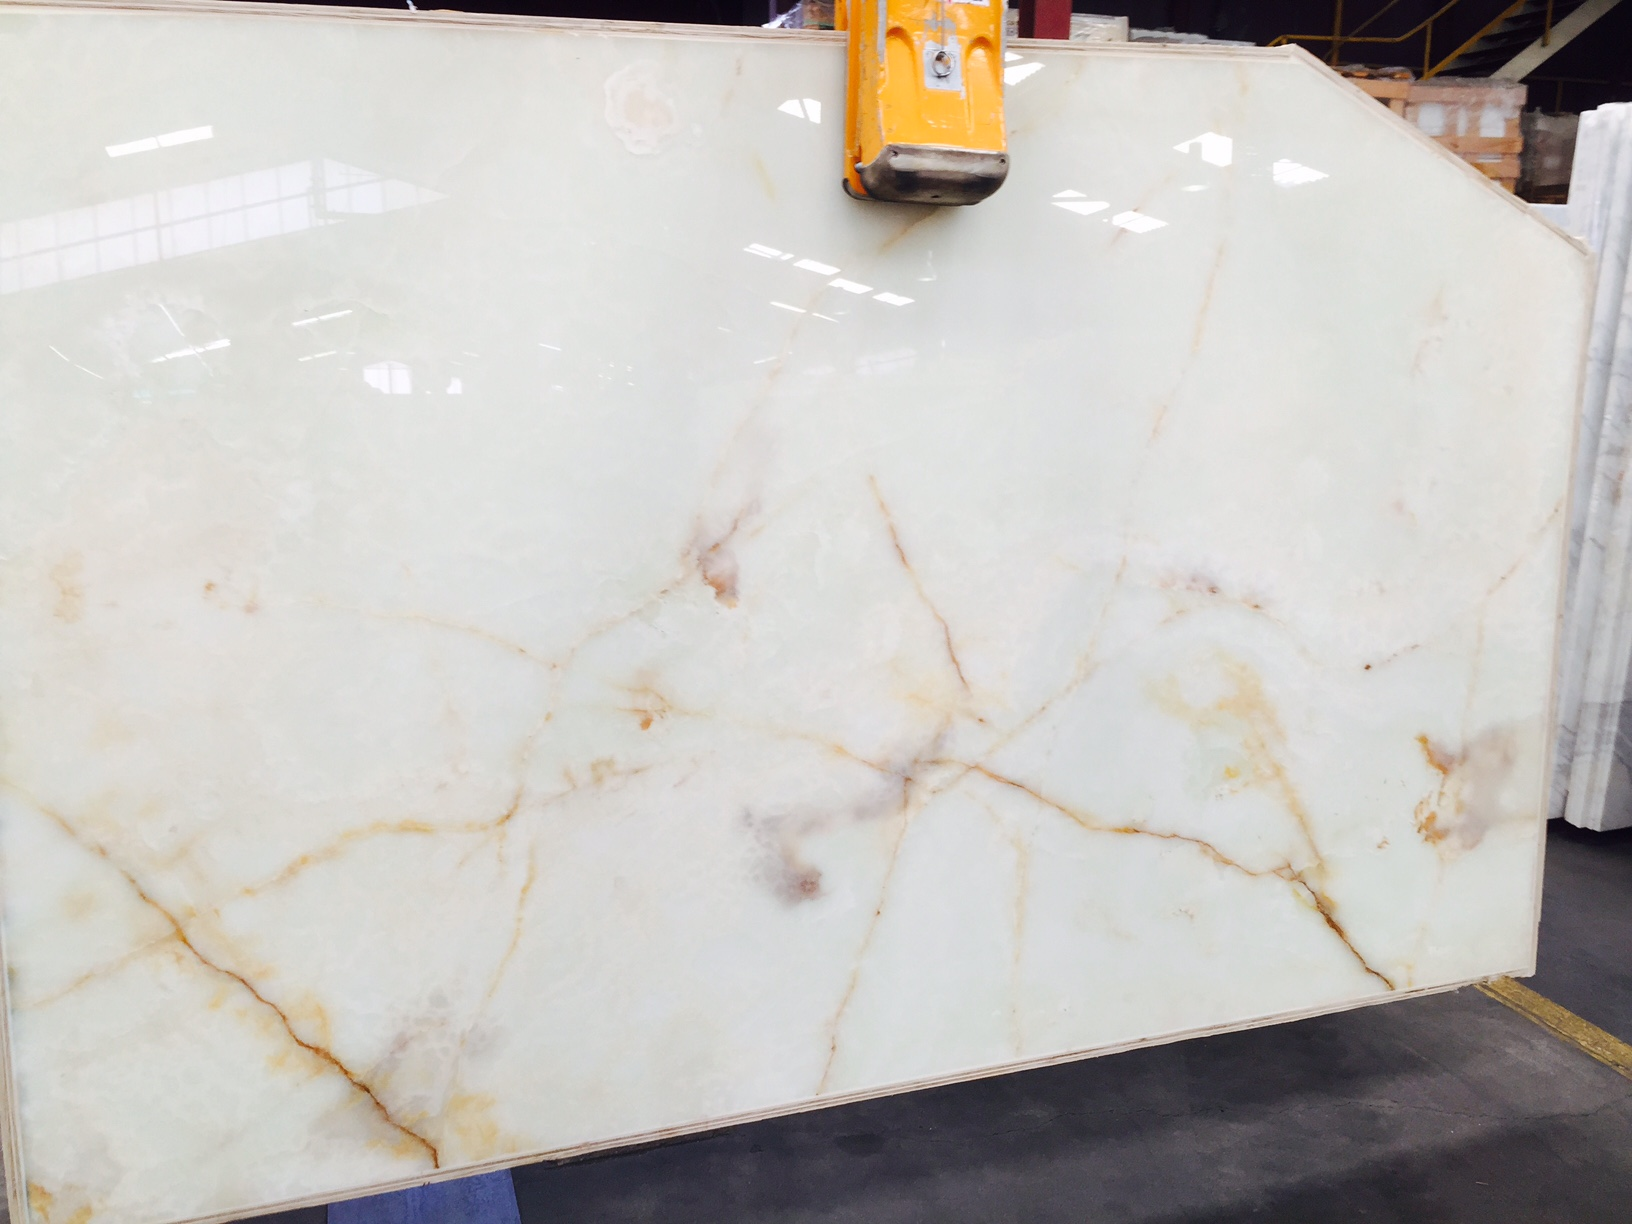 White Onyx Marble : Onyx slabs sydney tiles supplier